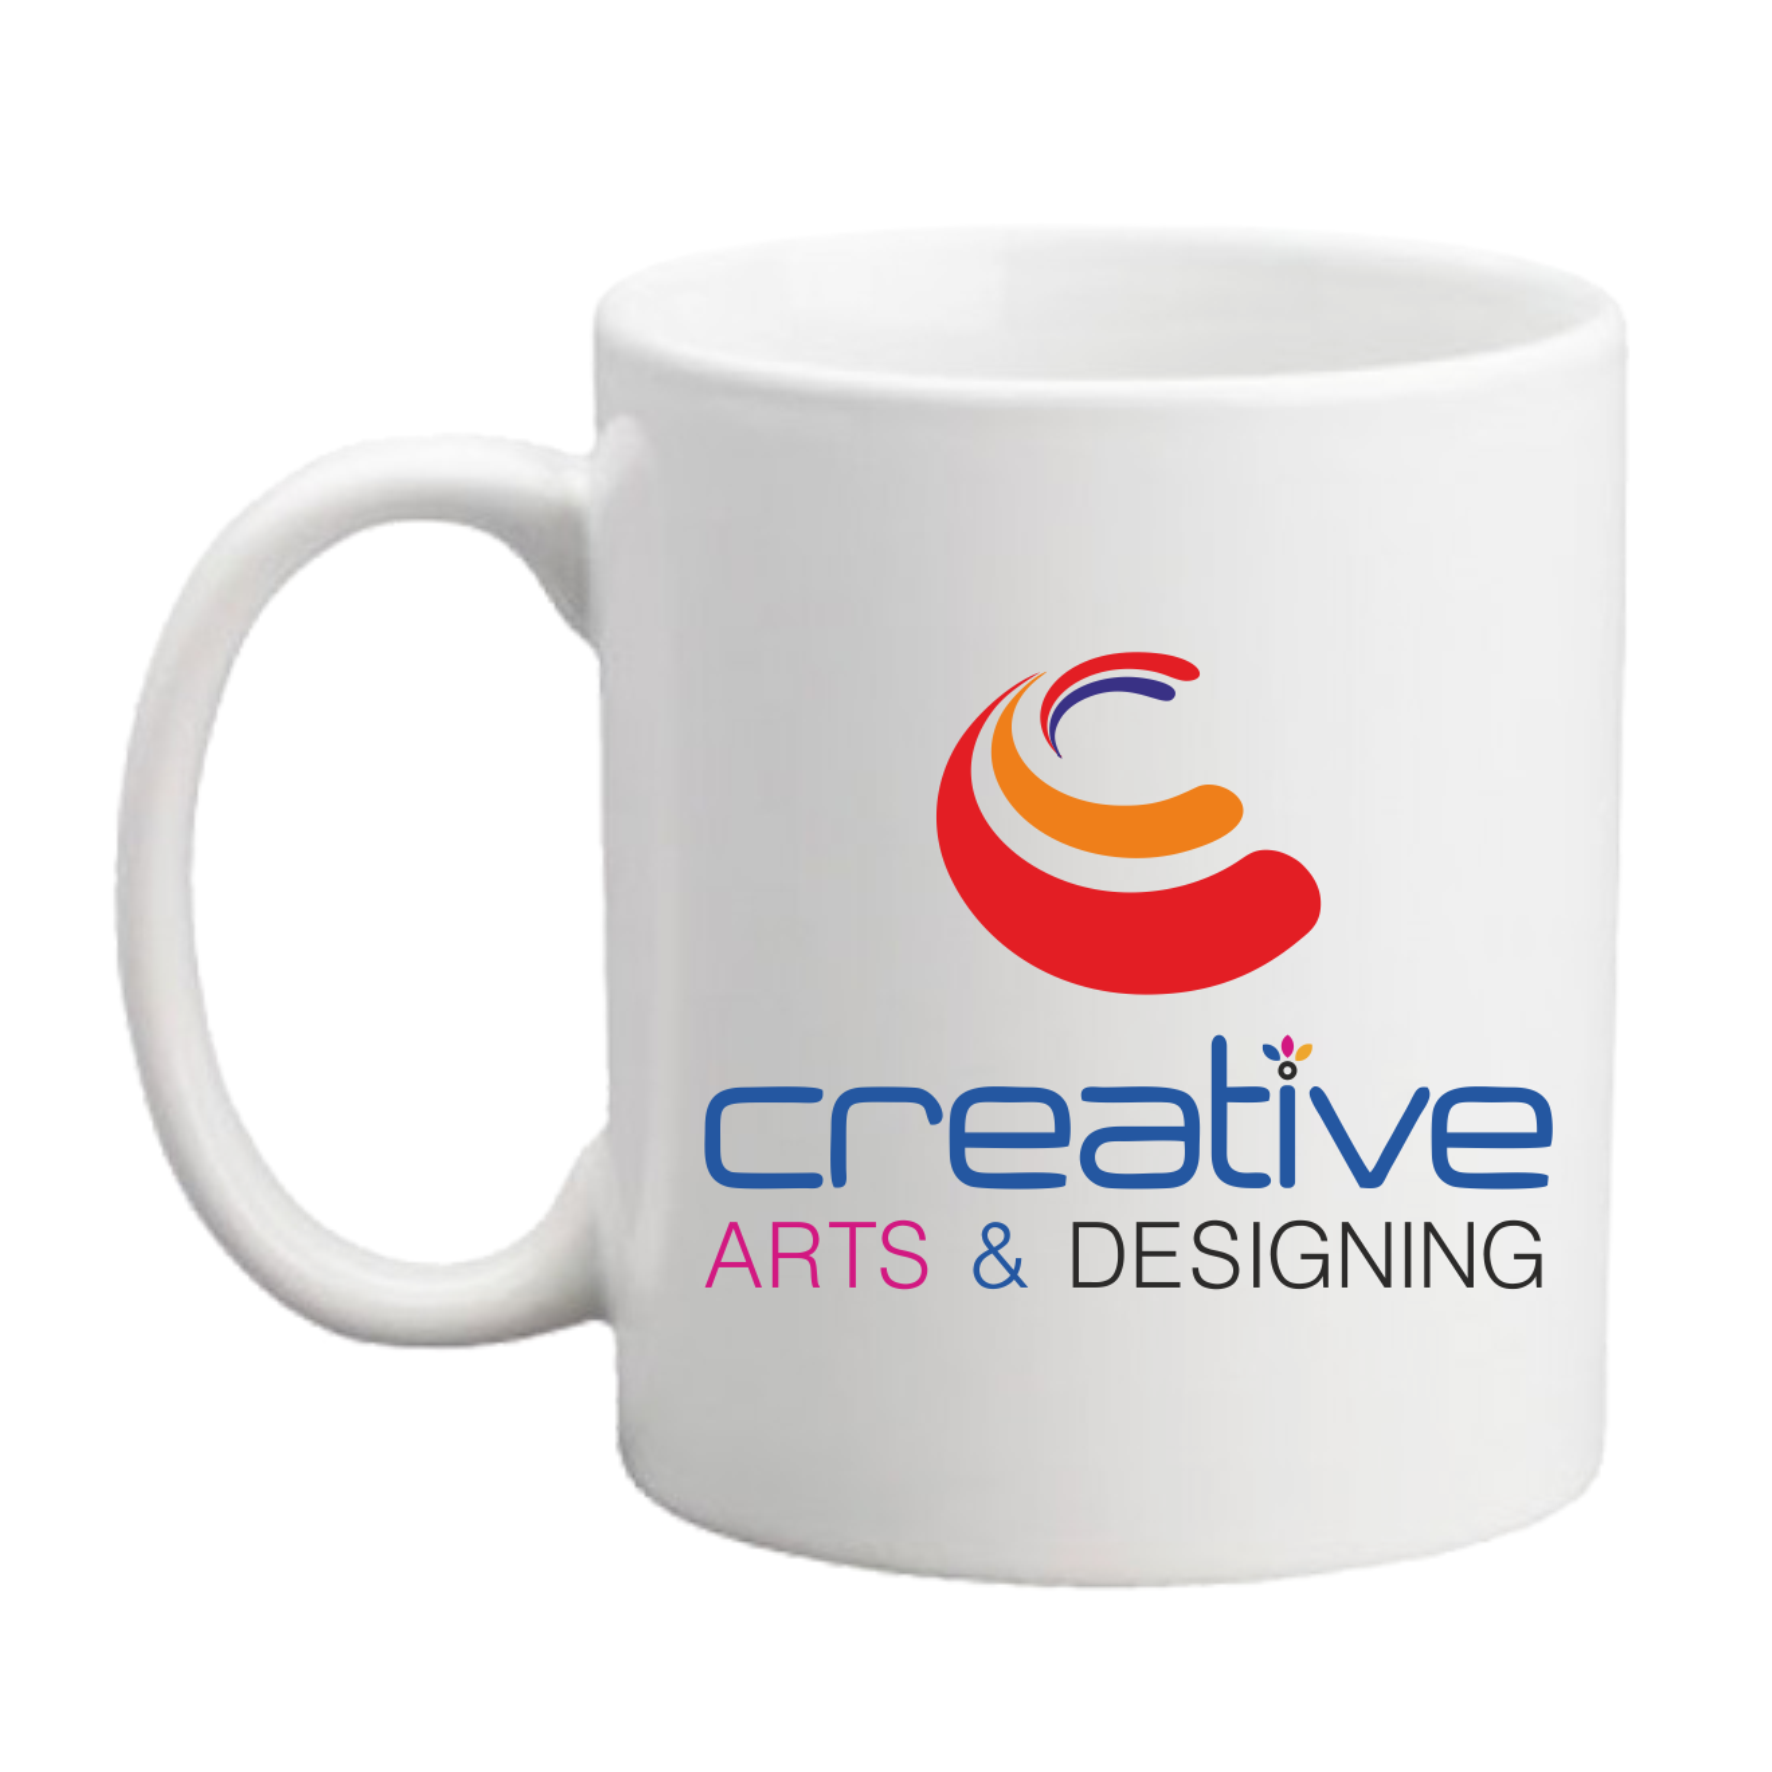 creative arts logo on coffee mug creative arts. Black Bedroom Furniture Sets. Home Design Ideas